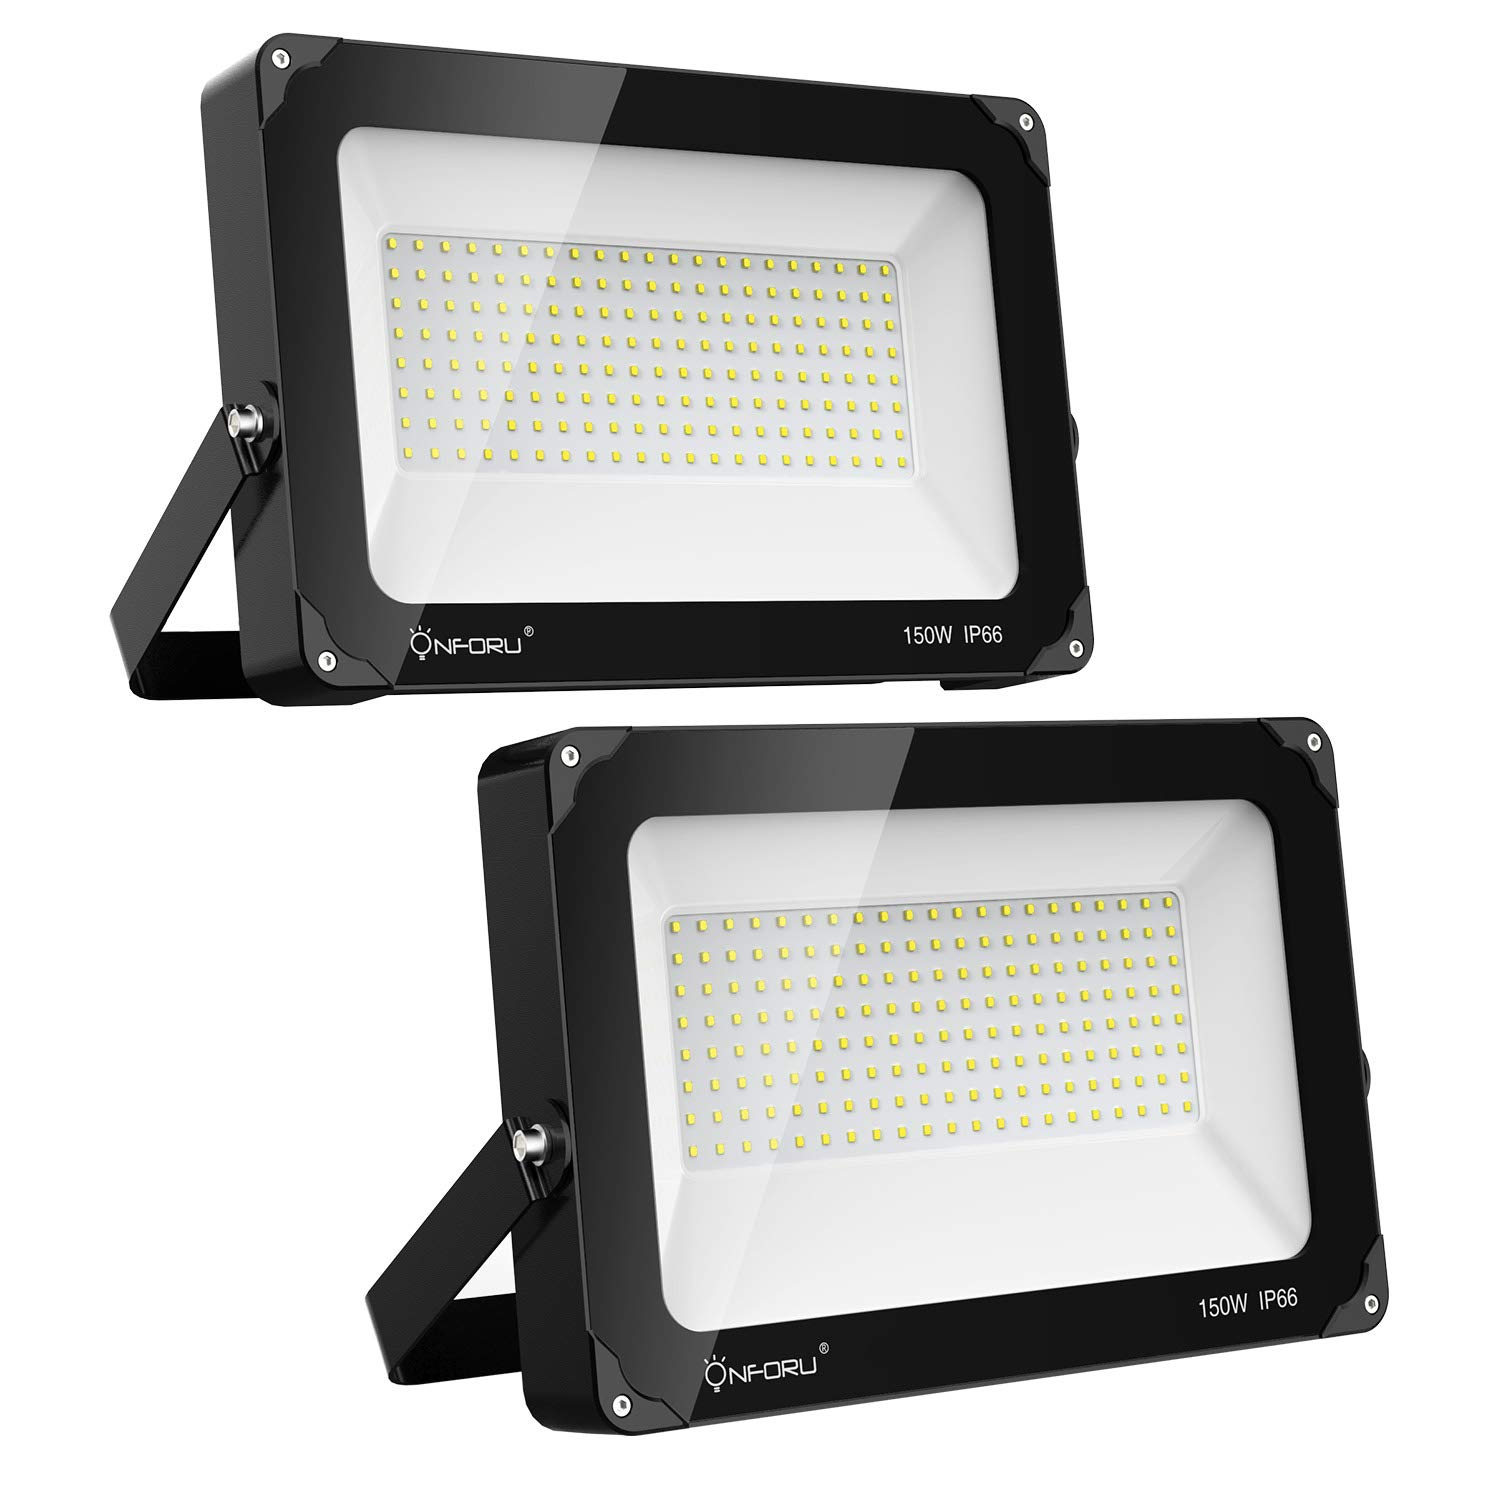 Onforu 2 Pack 150W LED Flood Light, 15,000lm 5000K Daylight White, IP66 Waterproof Super Bright Security Lights, Outdoor Floodlight for Yard, Garden, Playground, Basketball Court by Onforu (Image #1)